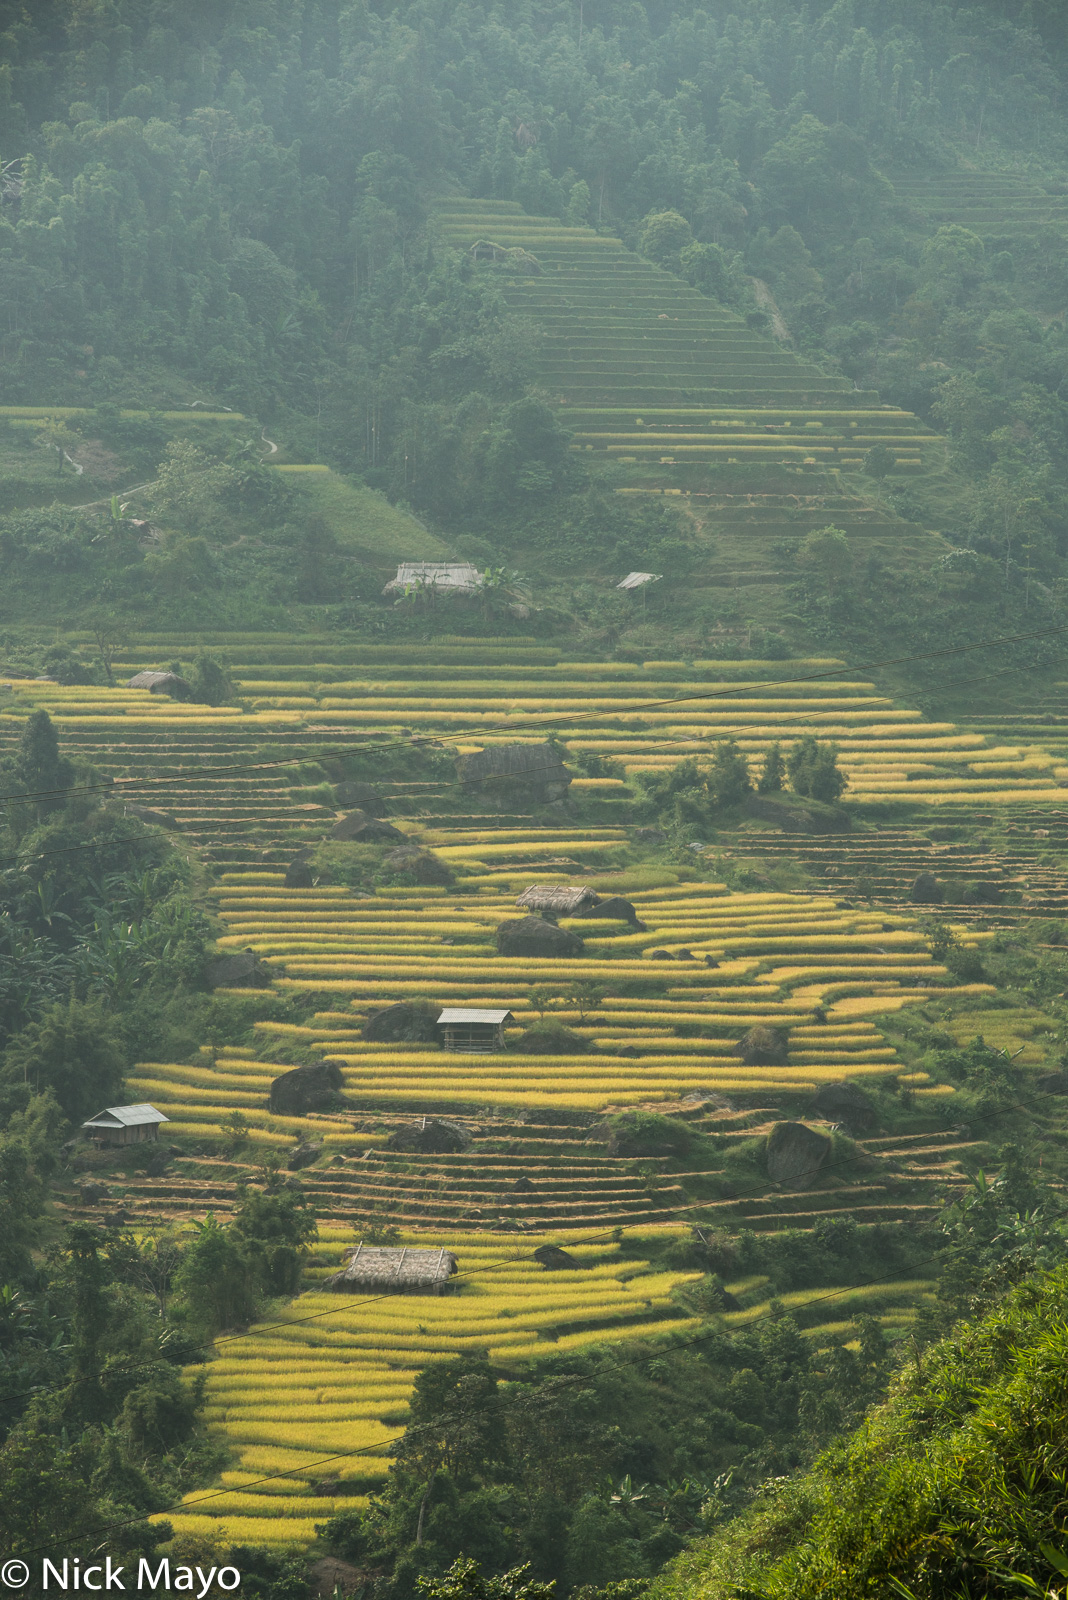 Multiple field huts on terraces of ripe paddy rice near Tan Minh.